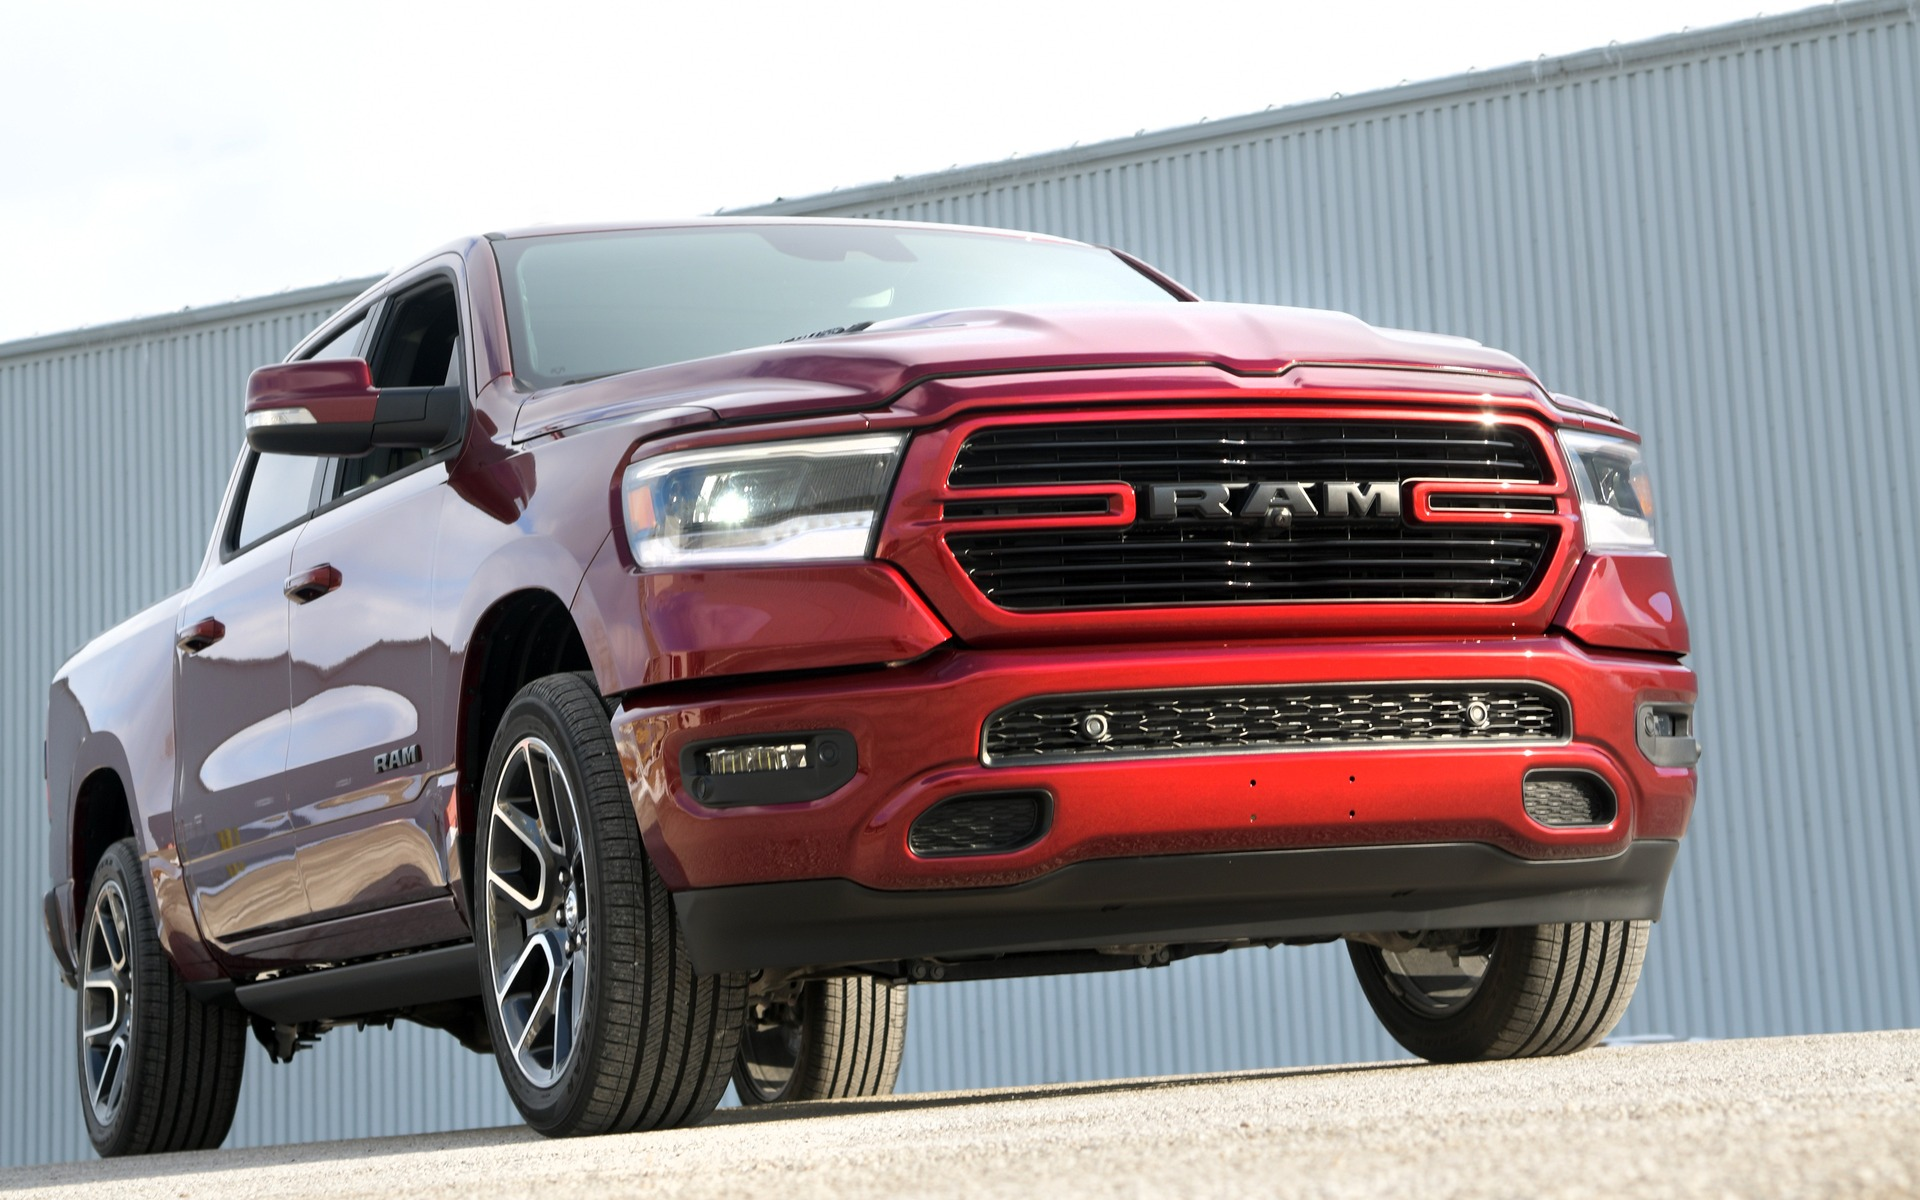 dealers news com and dodge image information conceptcarz truck ram